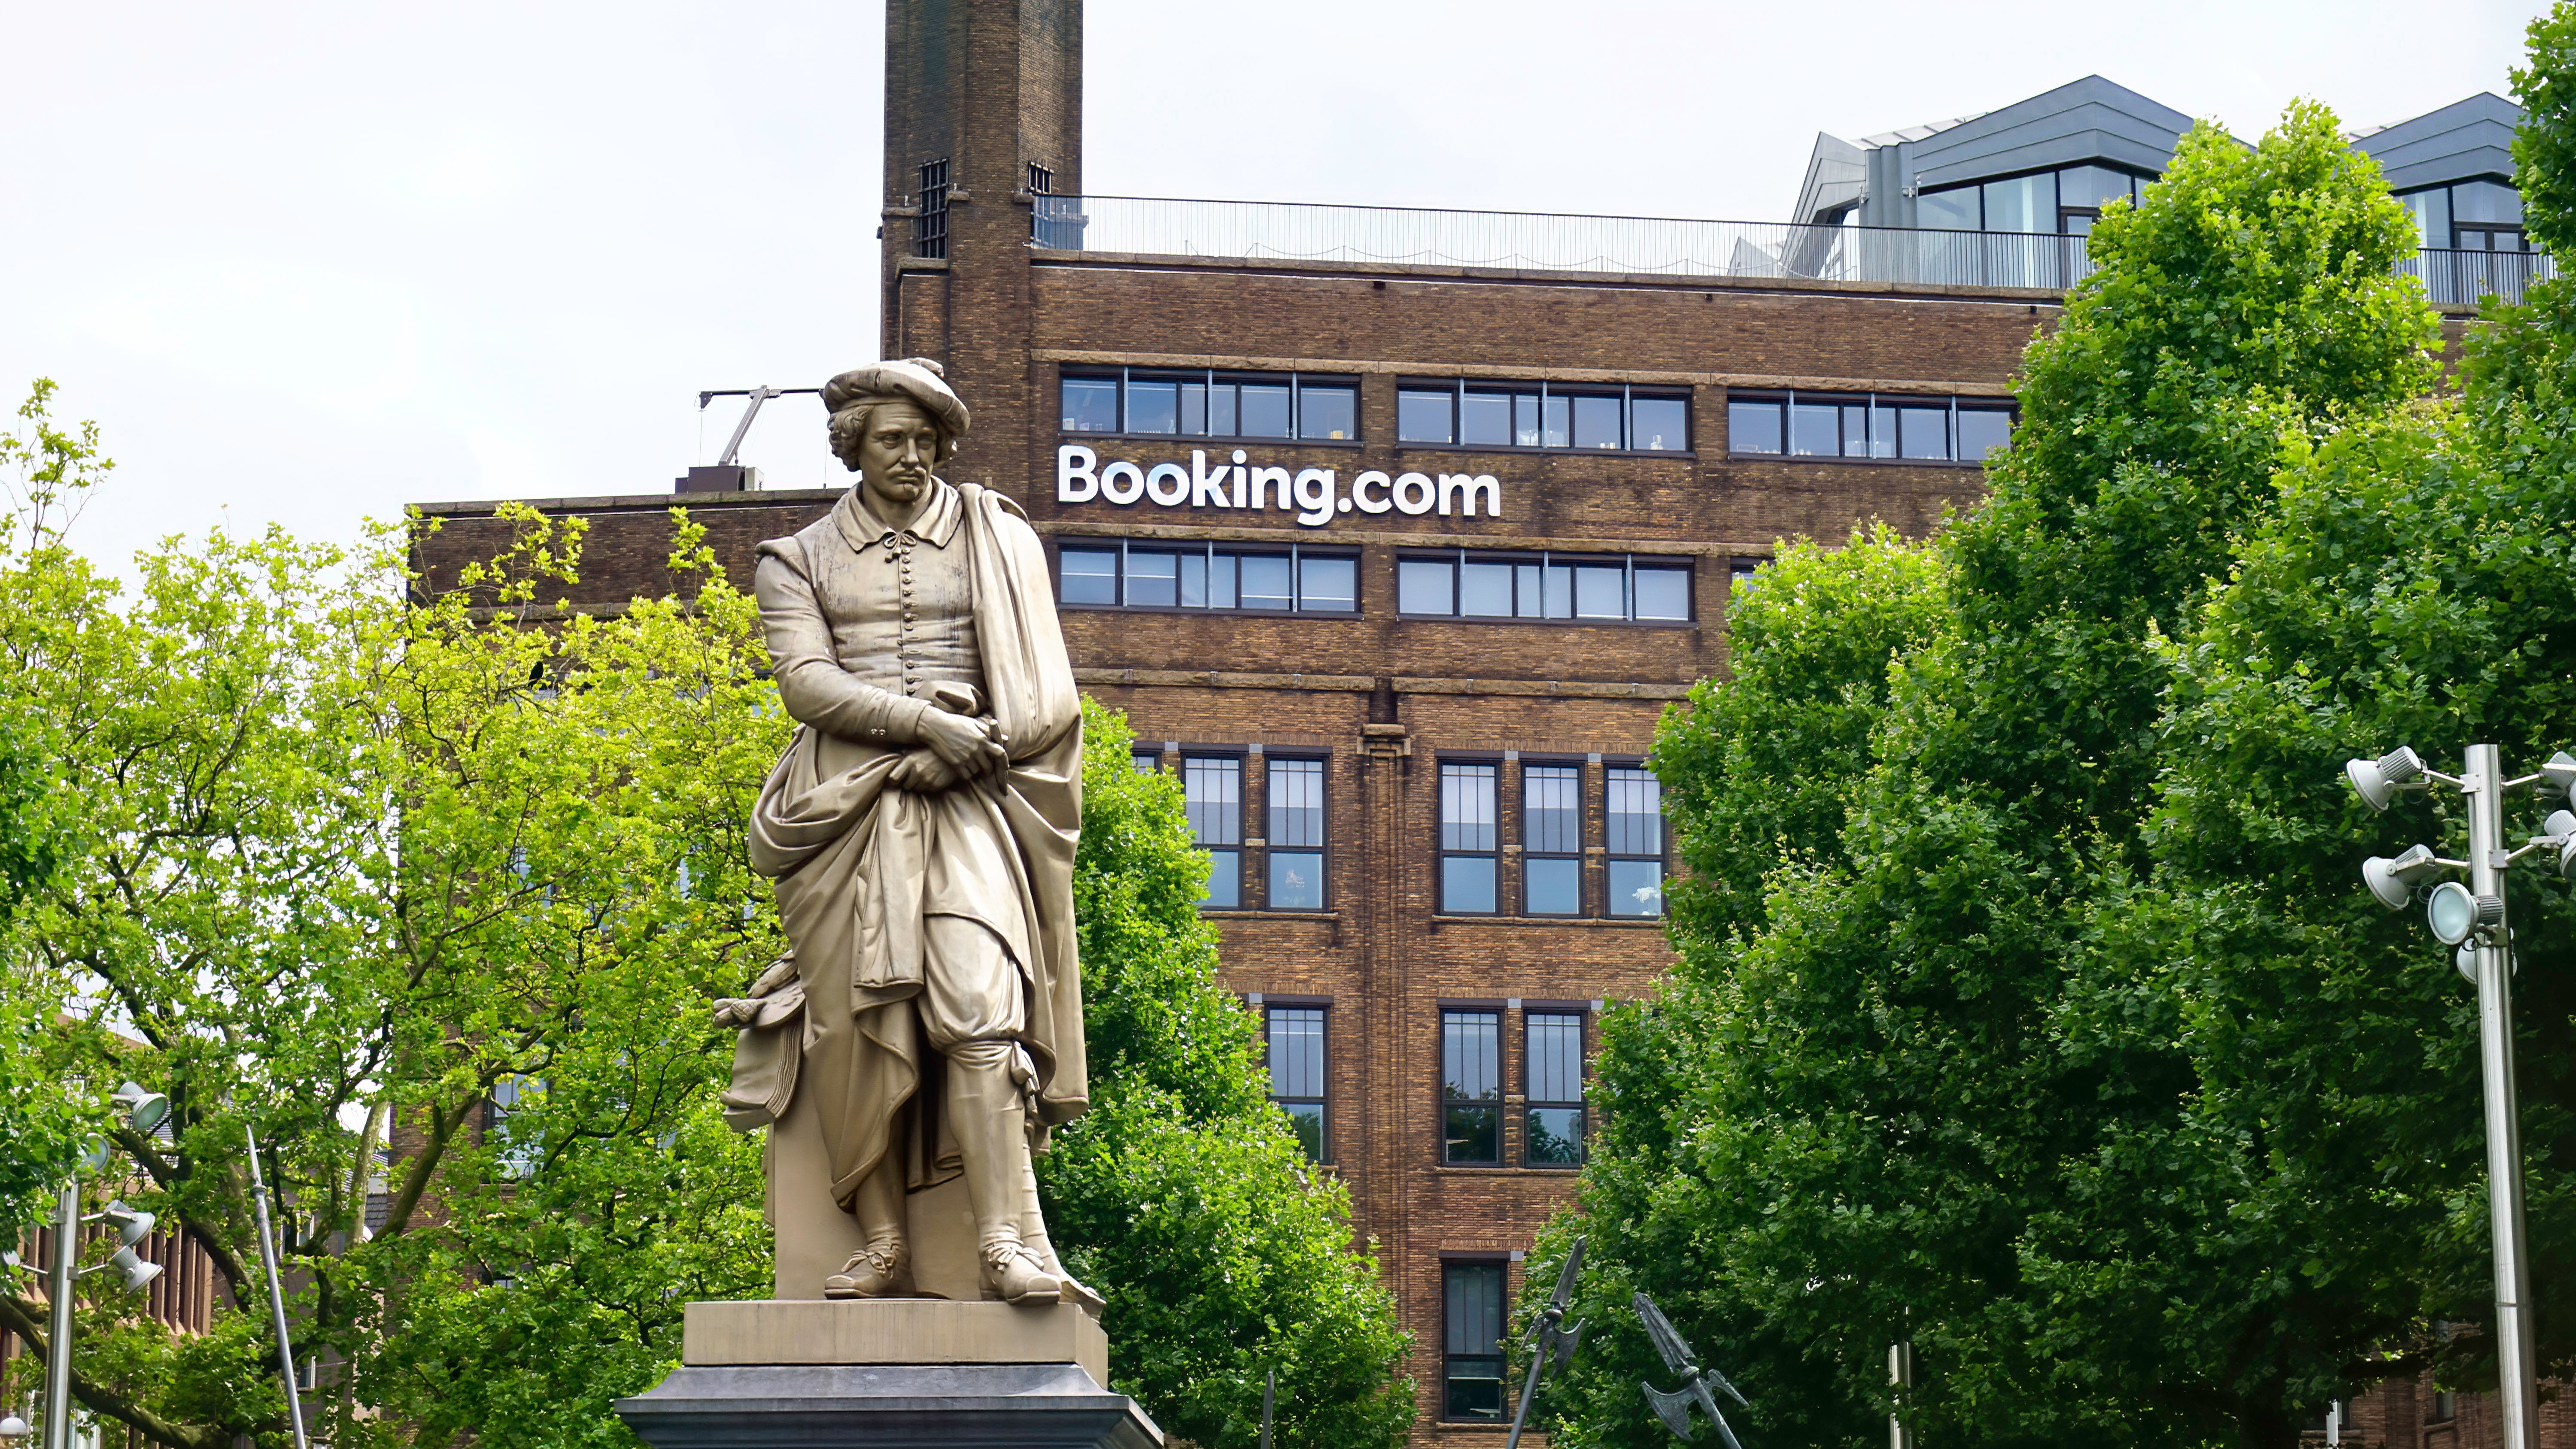 statue of man holding book near brown concrete building during daytime